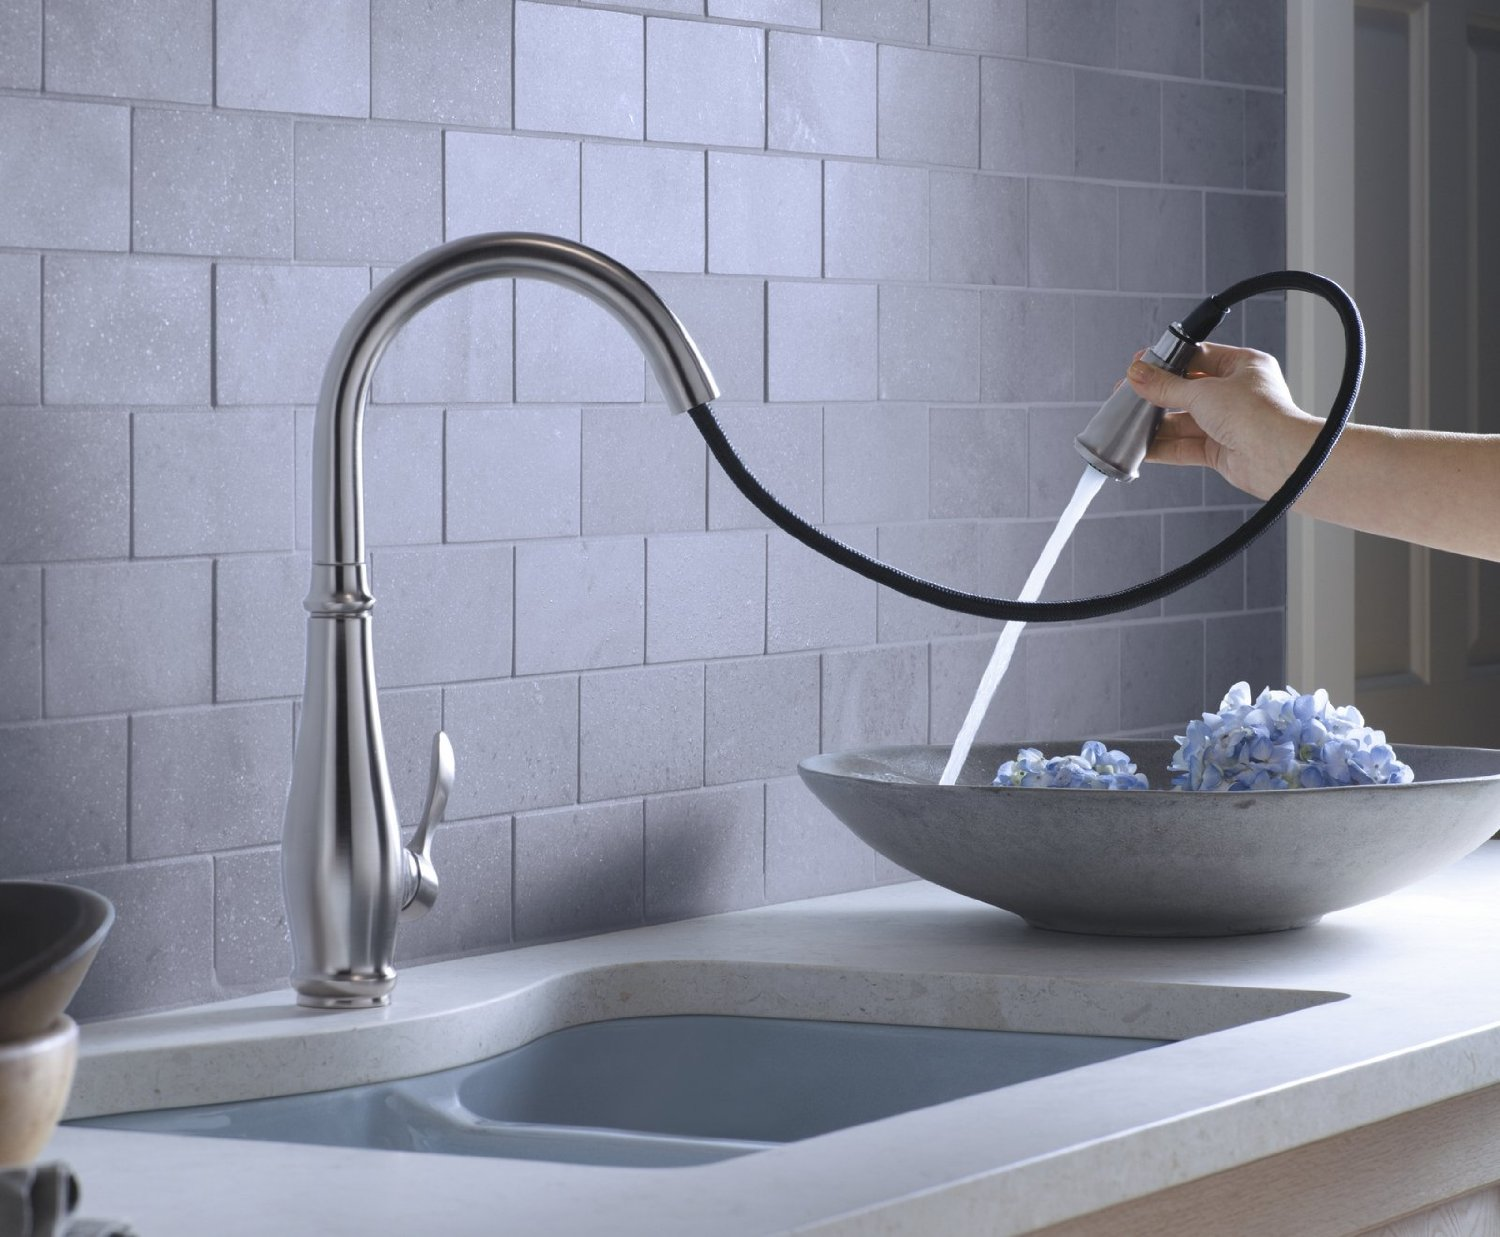 Best kitchen faucets 2013 kitchen faucets hub for Best selling kitchen faucet